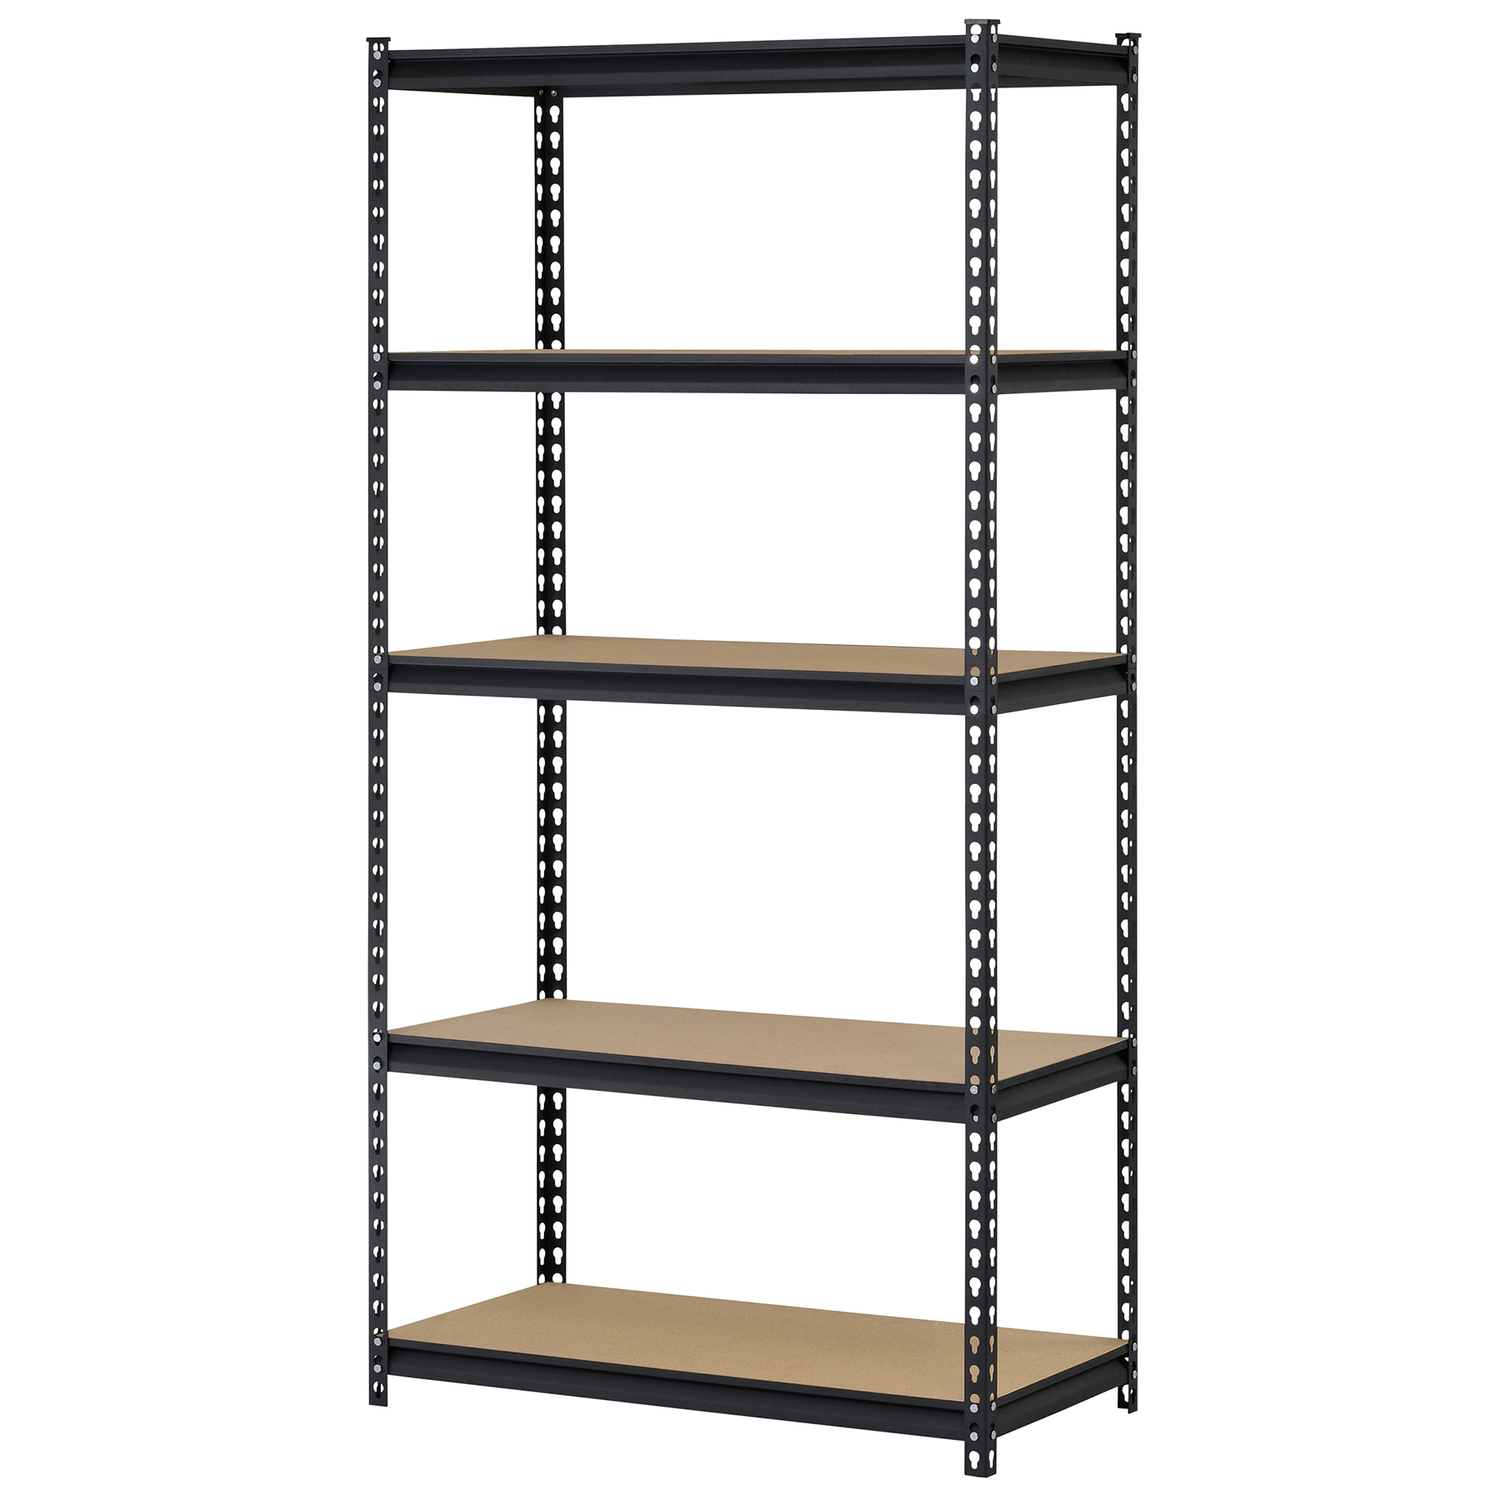 Ace Hardware Wire Closet Shelving - WIRE Center •